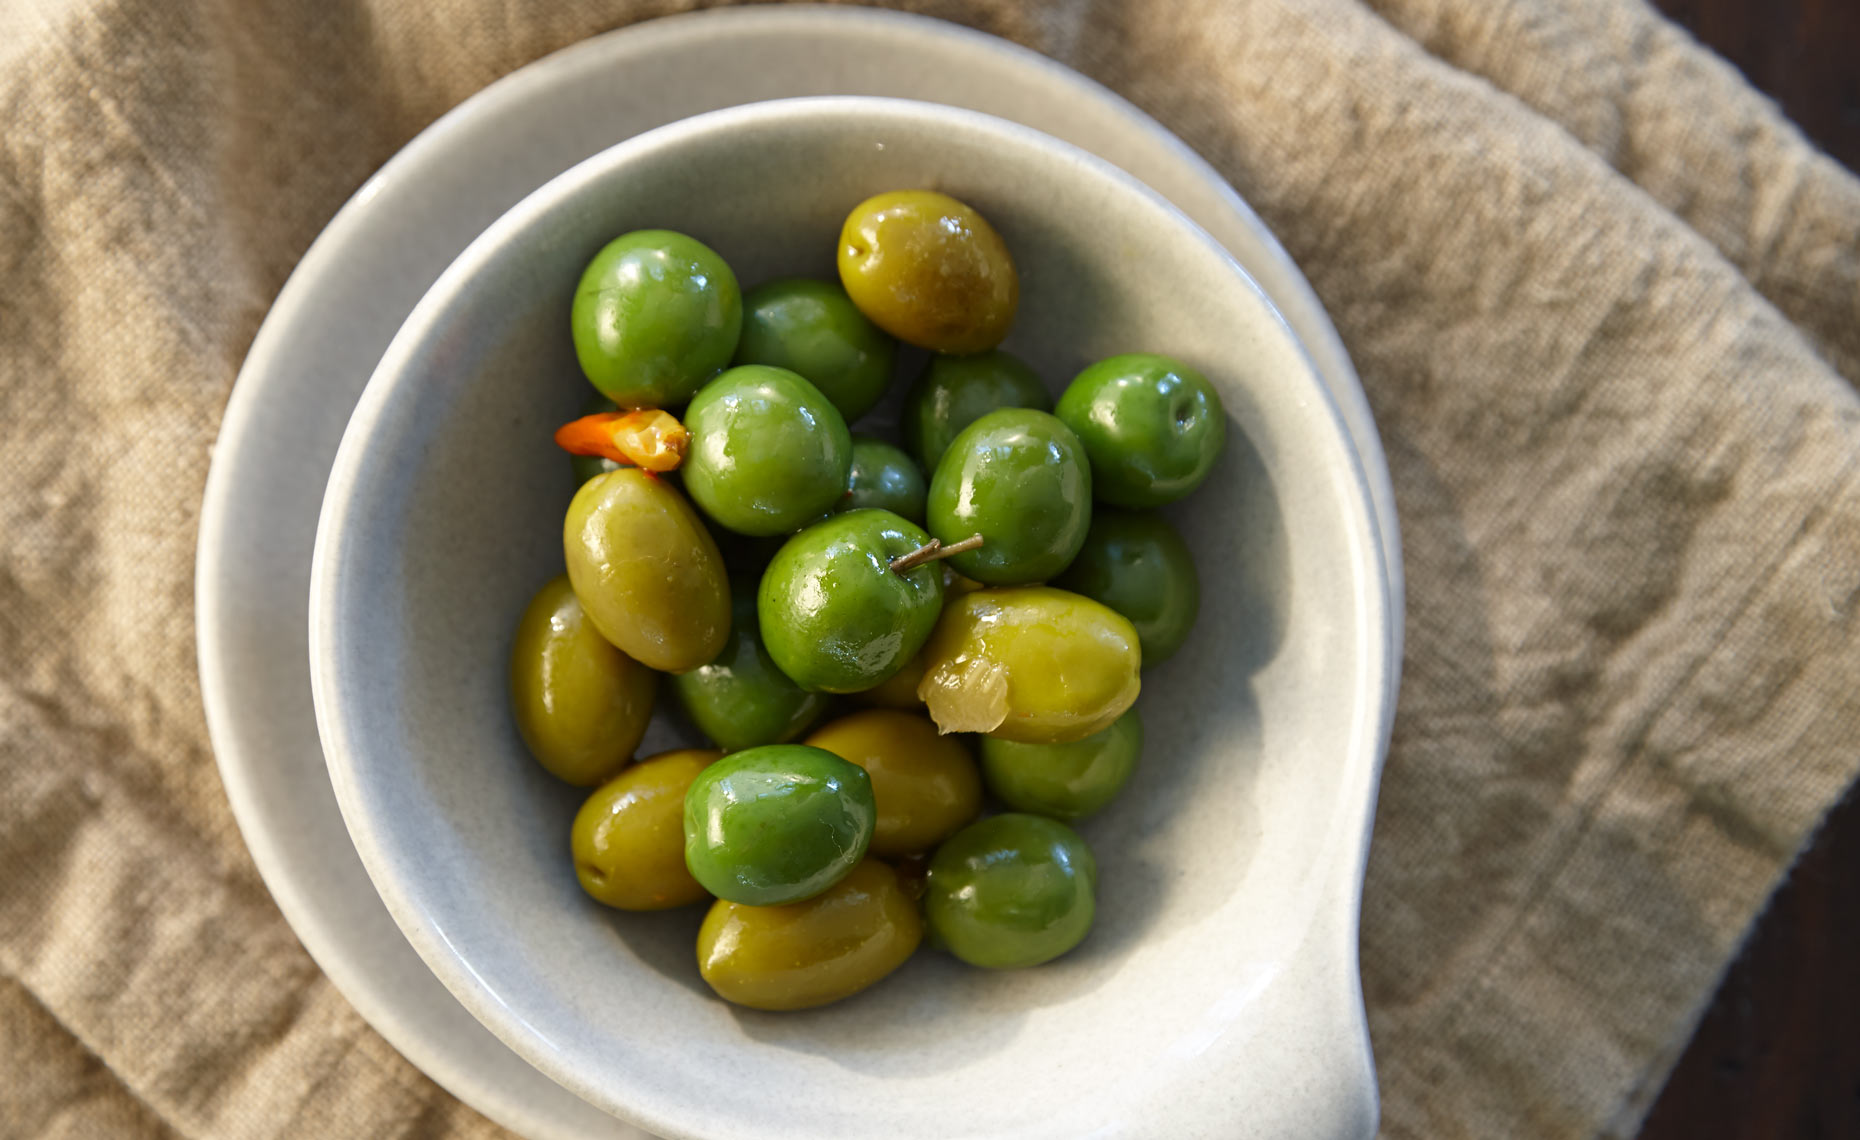 ppetizers-fruits-vegetables-photographers-olives-07